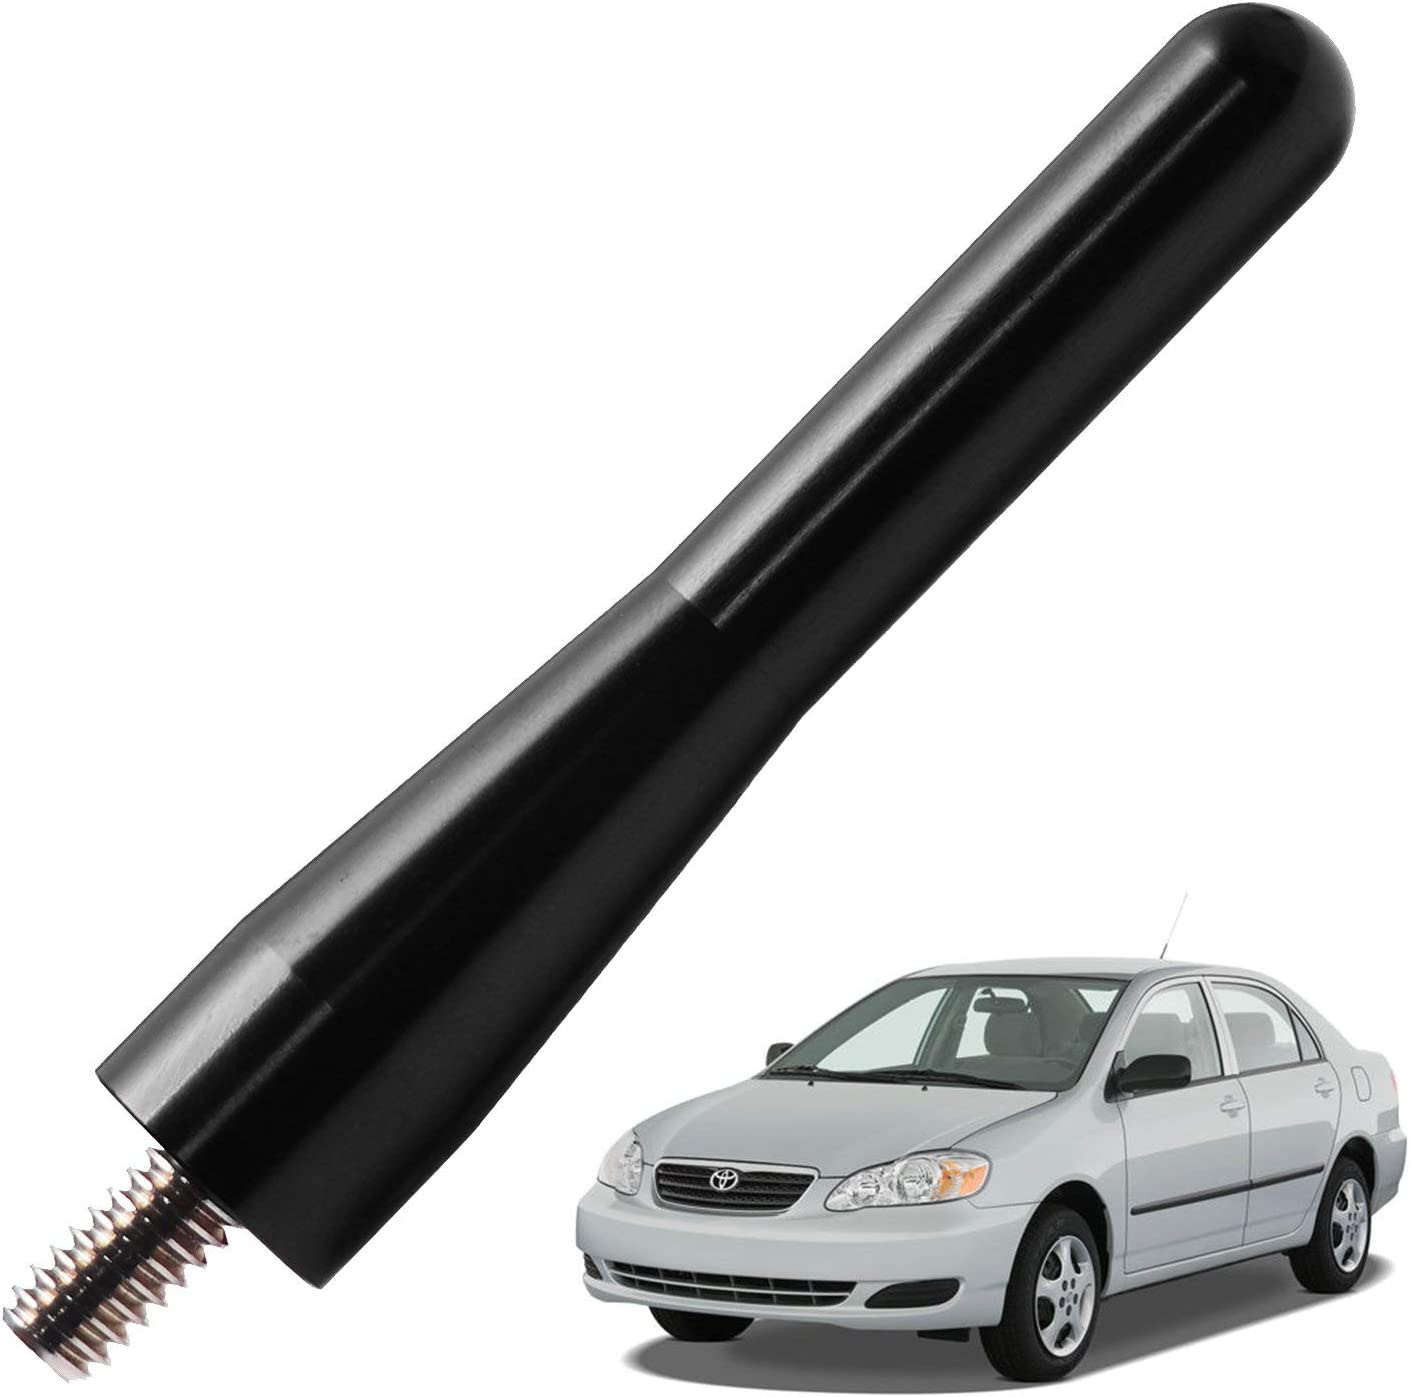 JAPower Replacement Antenna Compatible with Mini Cooper 2001-2018 3 inches-Black